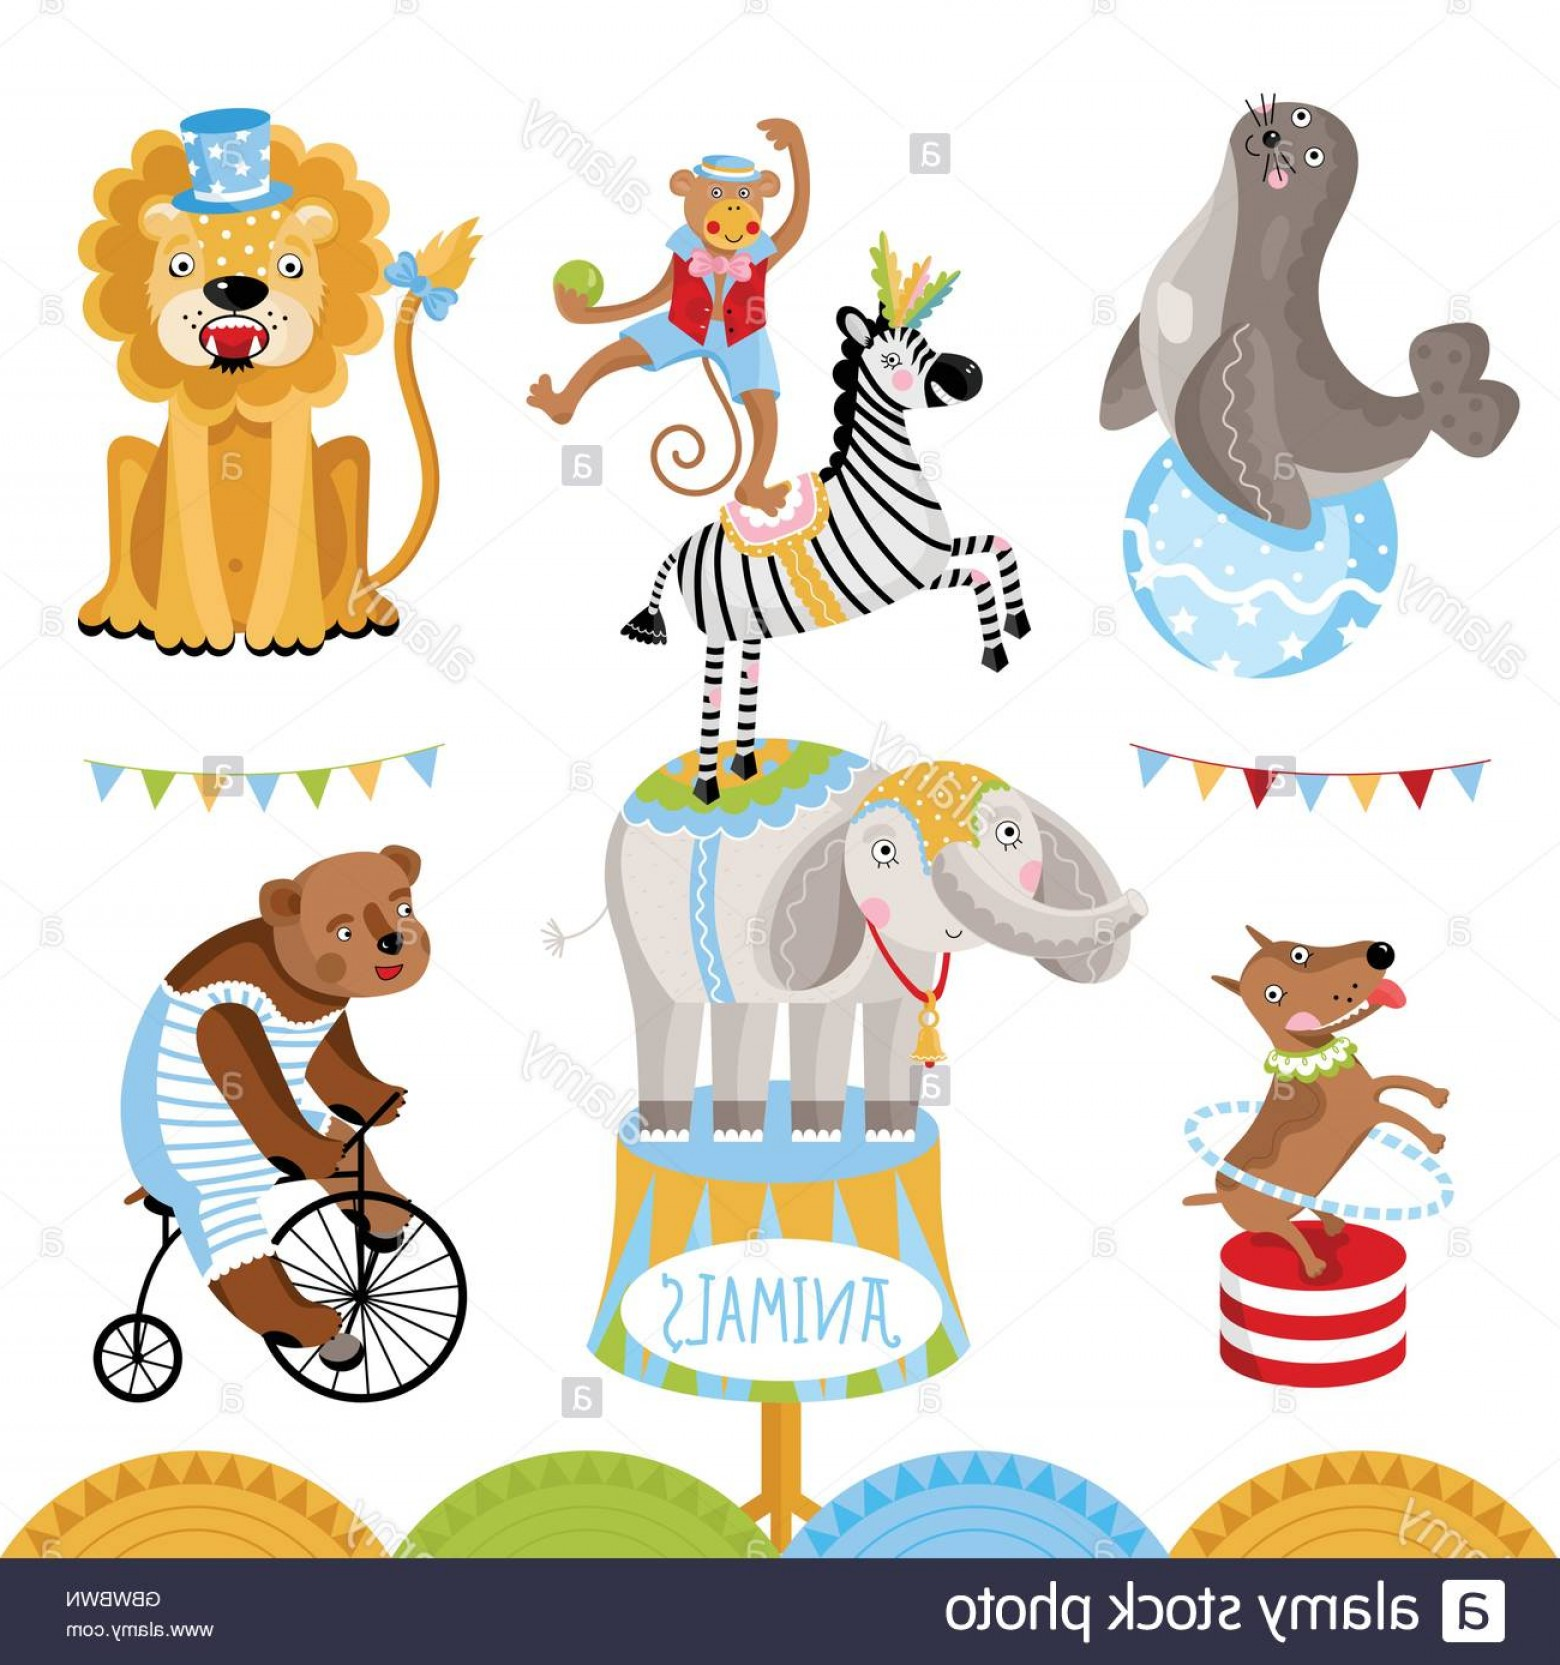 Circus Animals Vector Graphic: Stock Photo Vector Circus Animals Perform Tricks